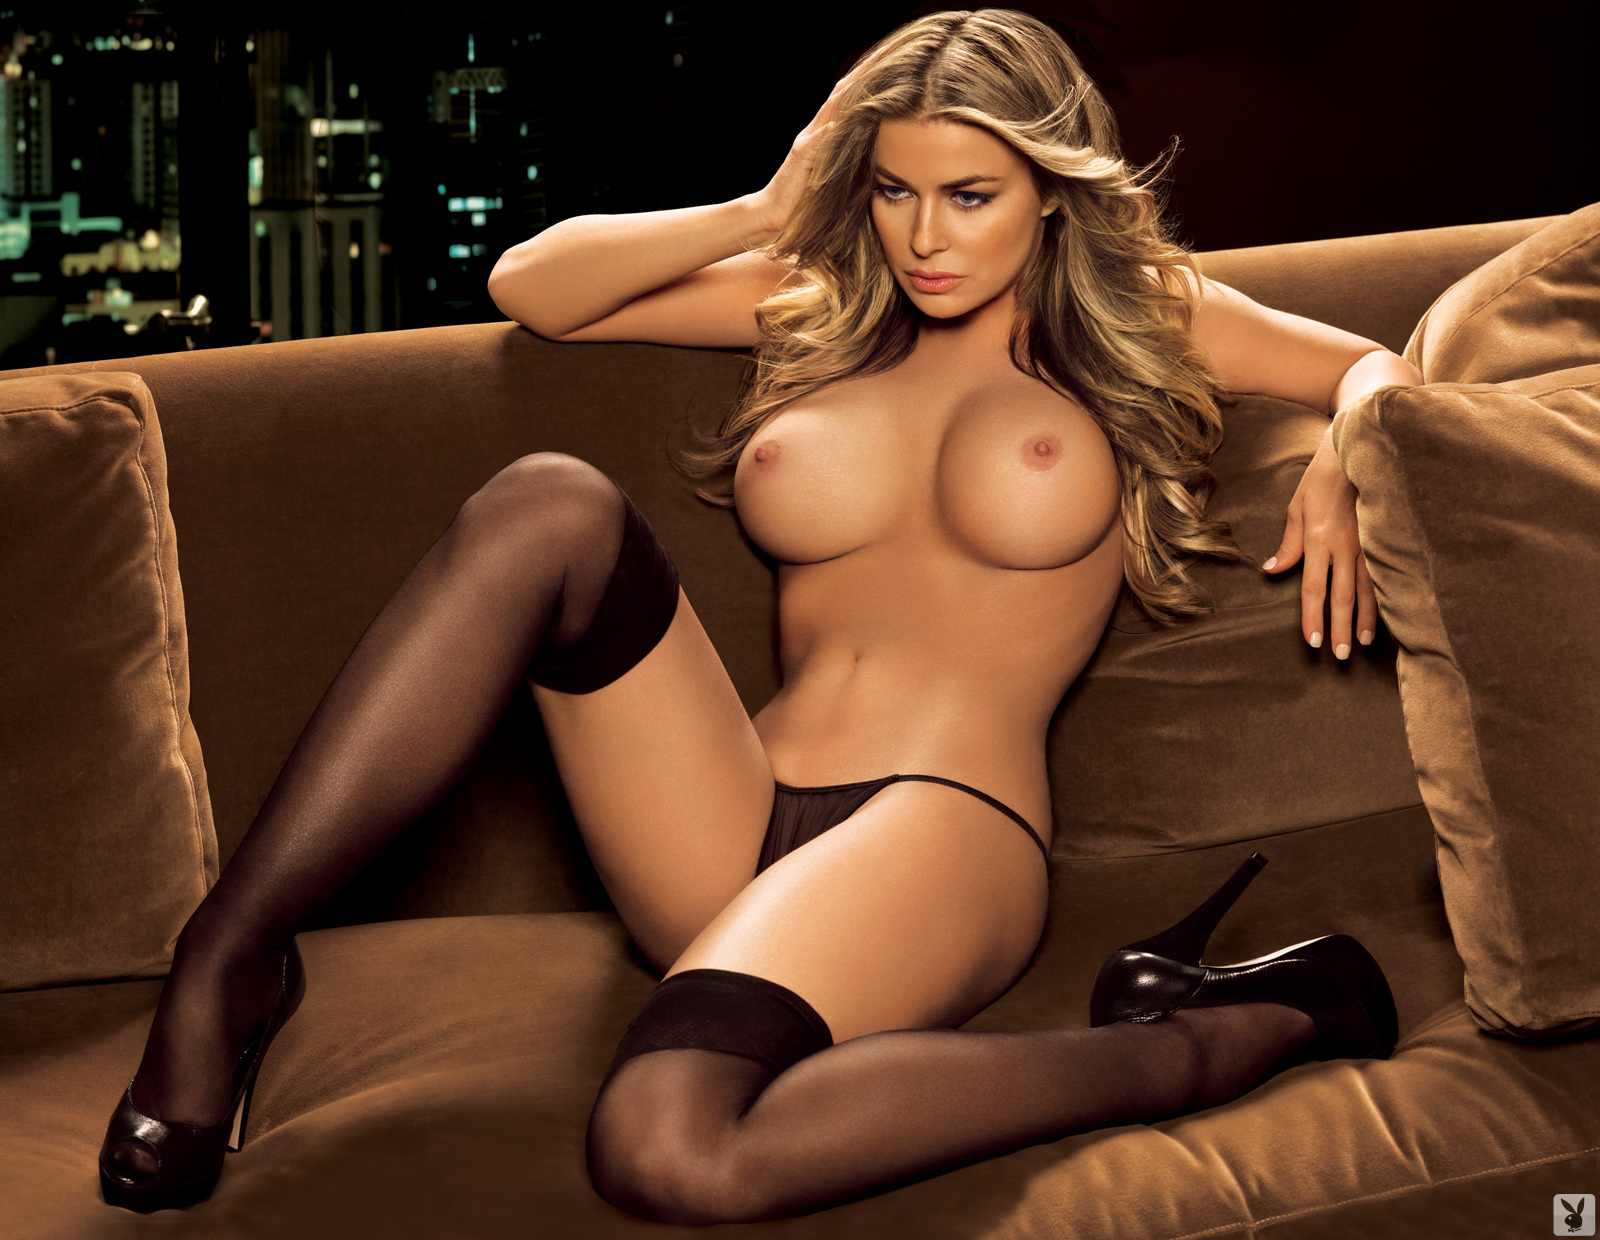 Playboy's celebrities nude pics, page